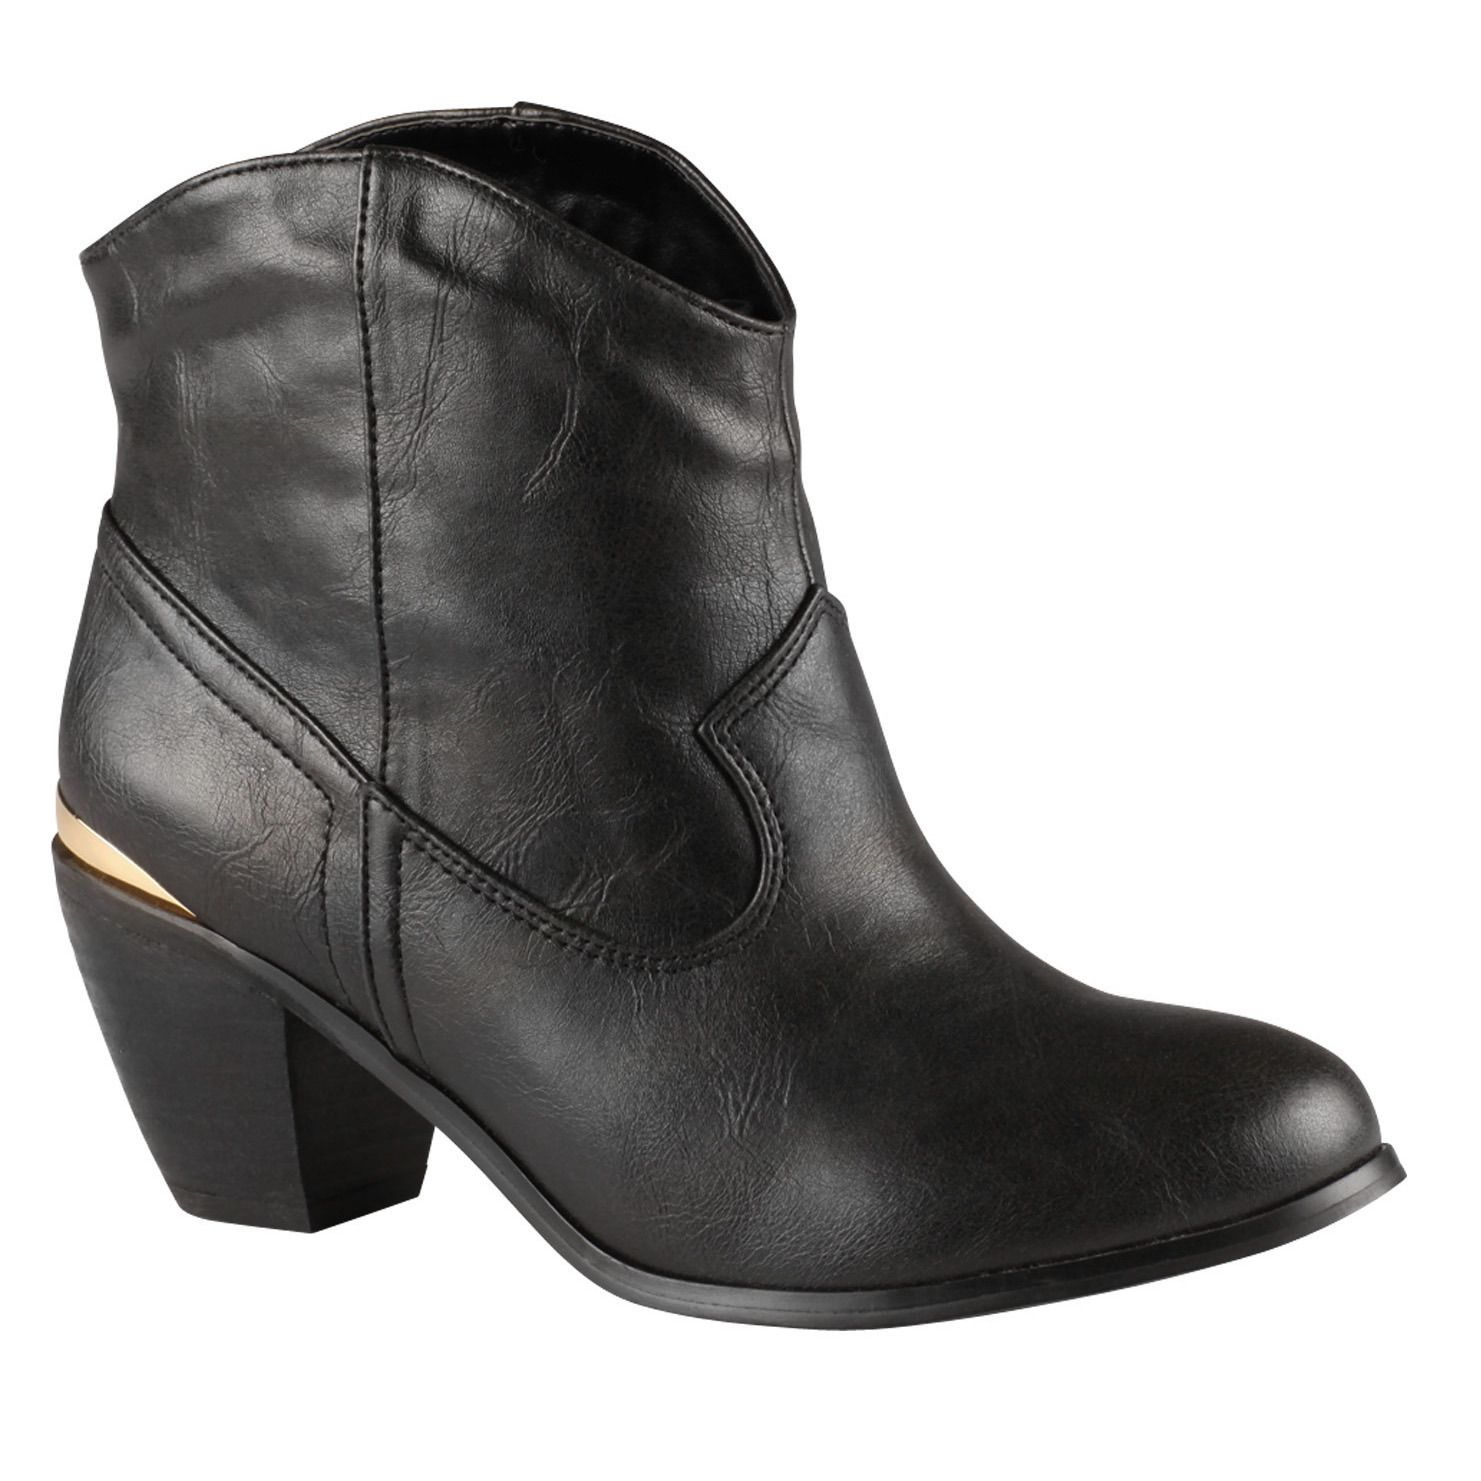 HAVERSTICK women's boots ankle boots at Spring